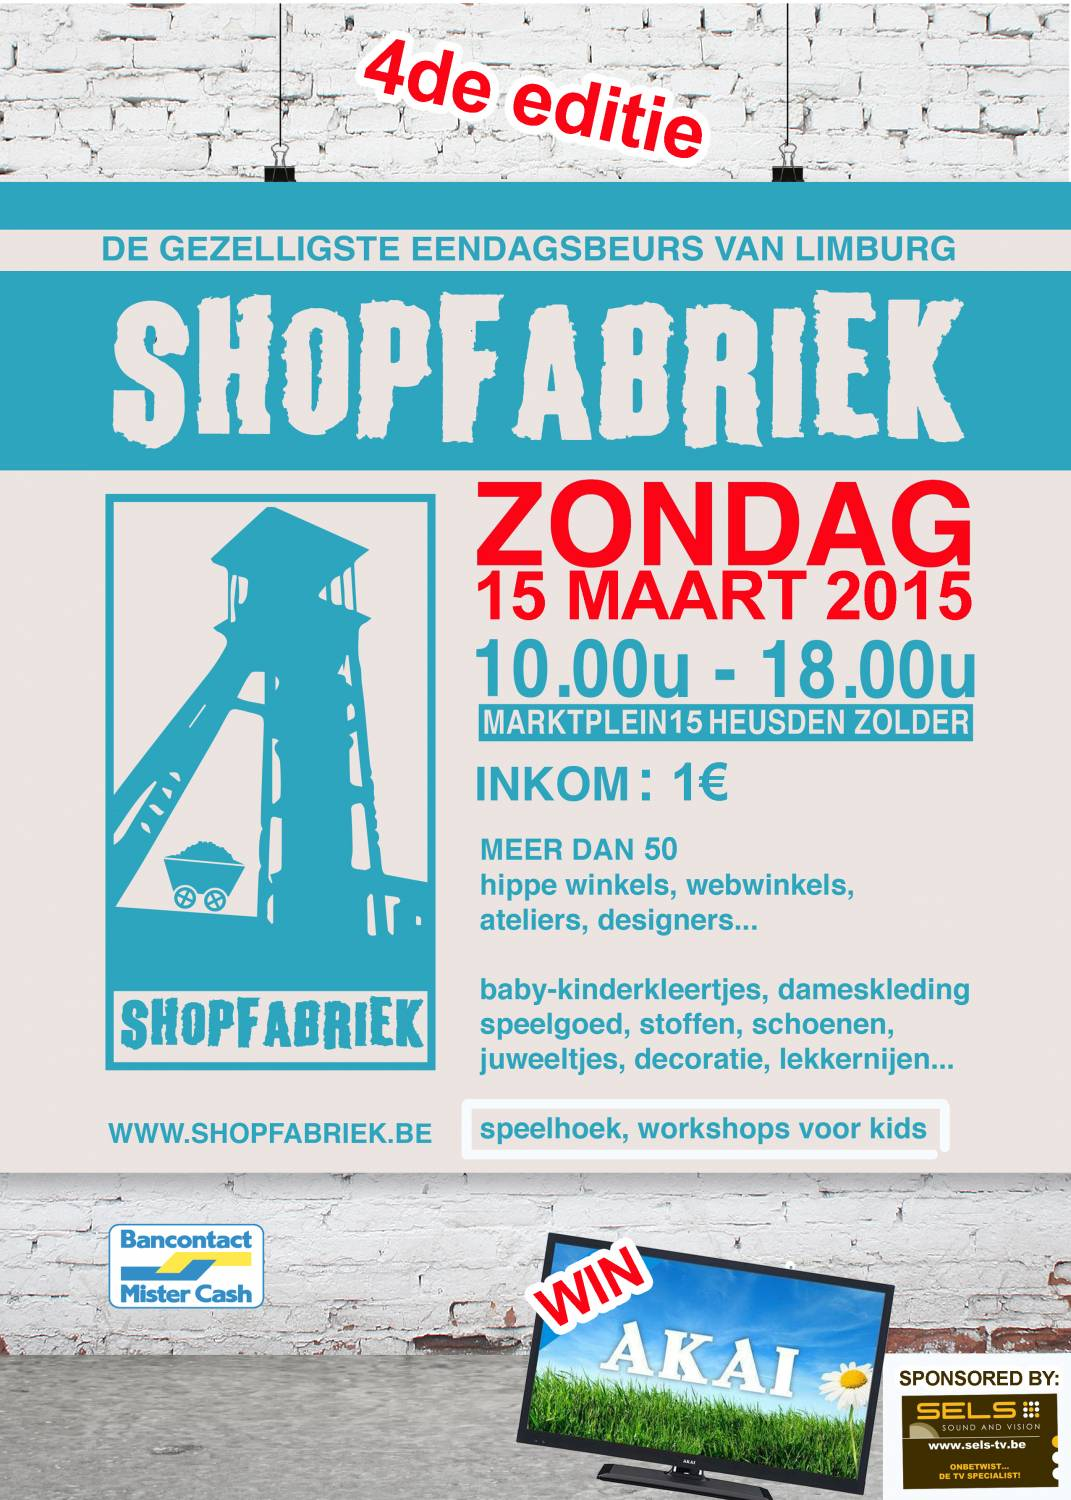 De Shopfabriek